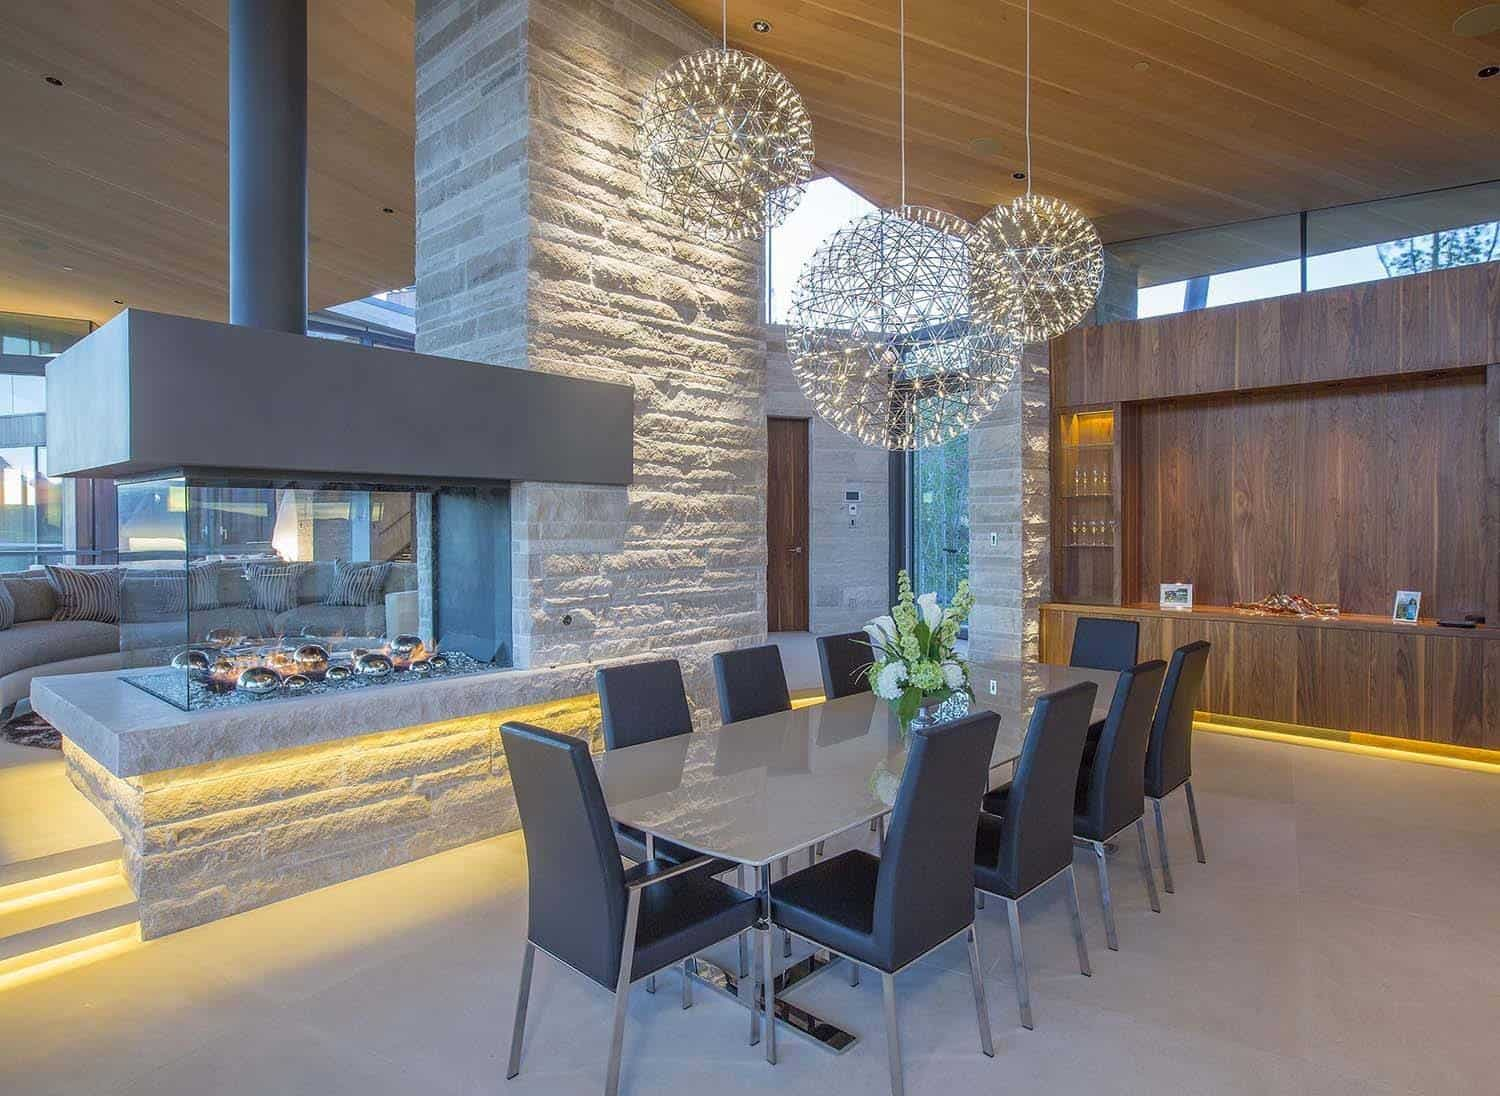 Modern-Residence-Colorado-Poss Architecture-15-1 Kindesign